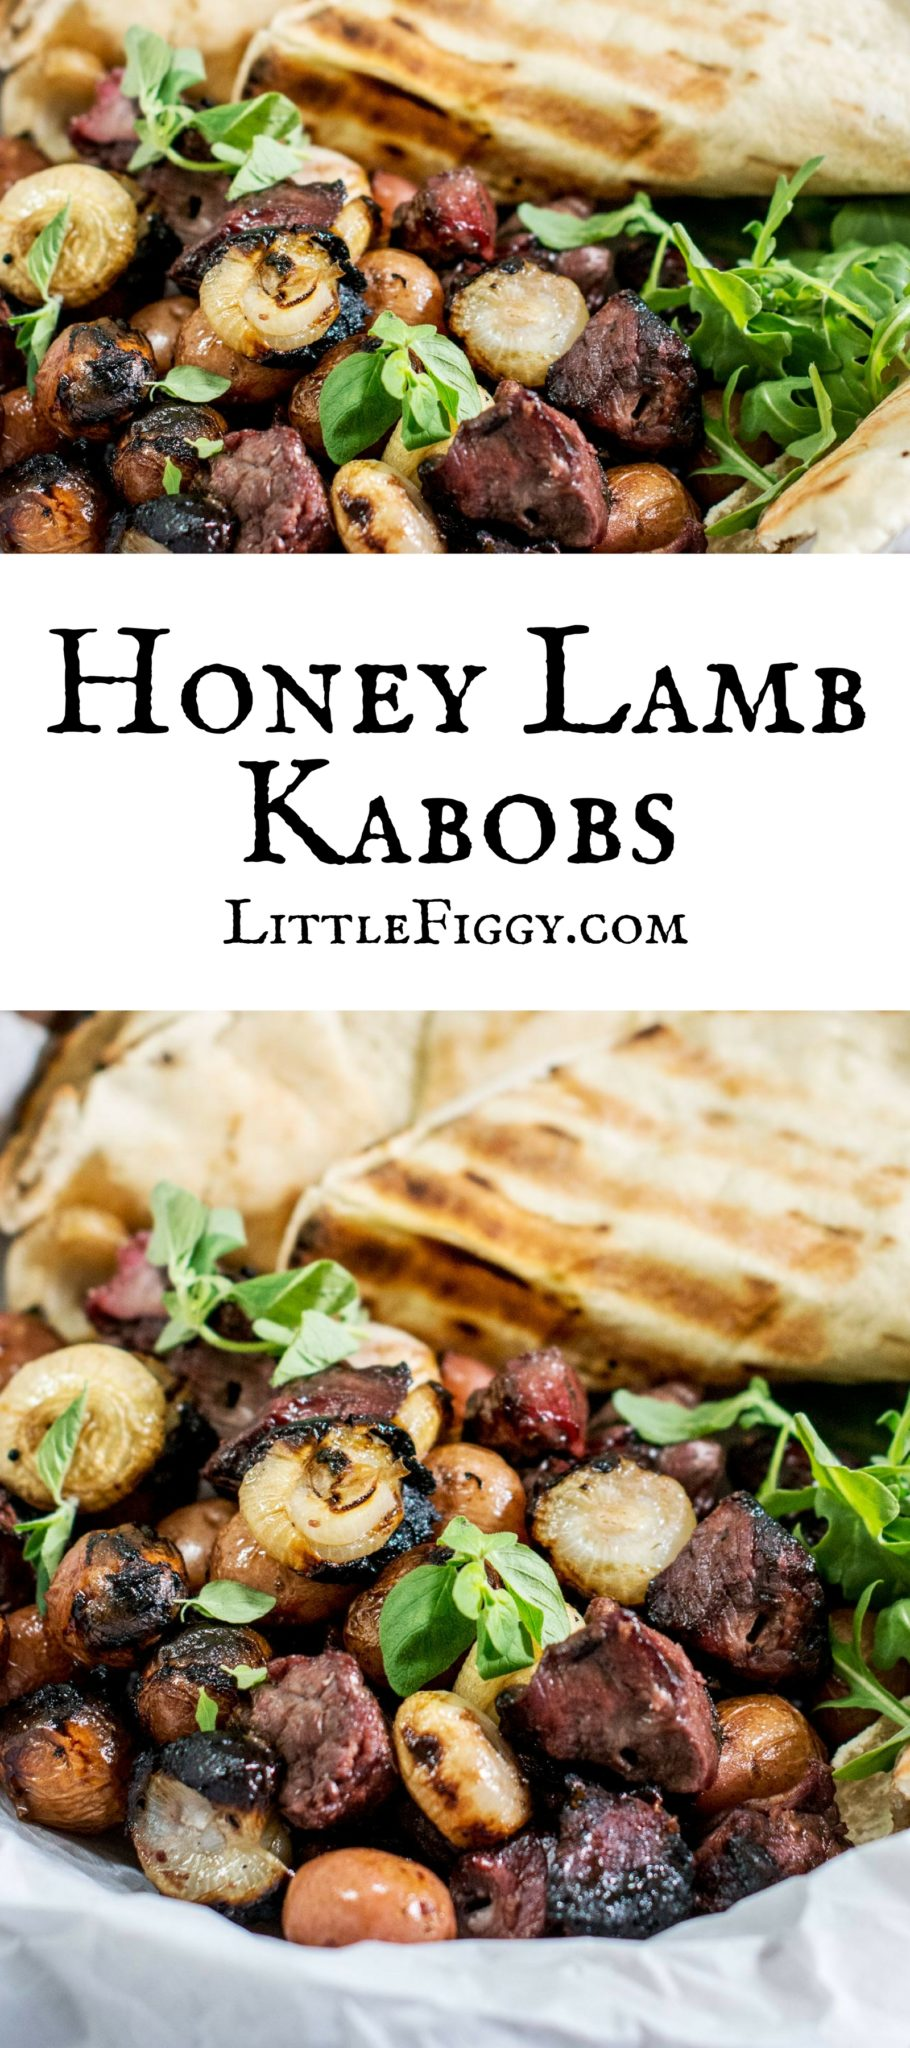 Aussie Honey Lamb Kabobs are so beautifully flavored and easy to make! Get the recipe at Little Figgy Food. They're #Aussome @aussiebeeflamb @biggreenegg #ad